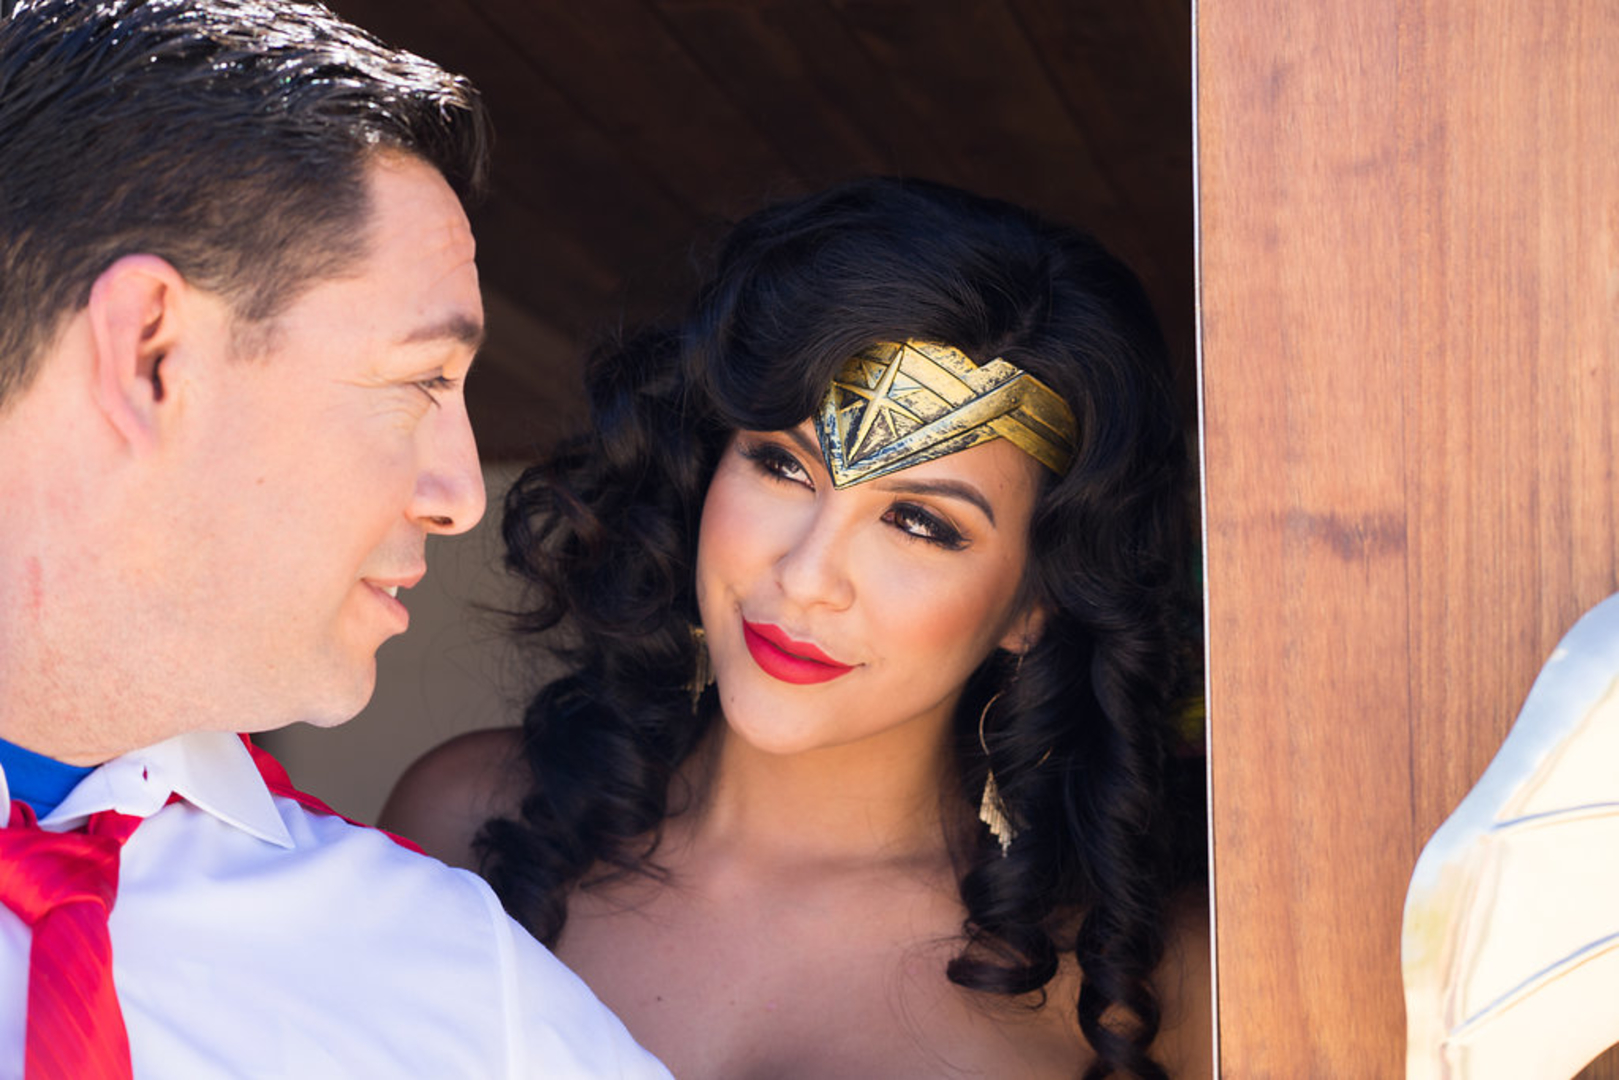 Superman and Wonder-woman smiling at each other